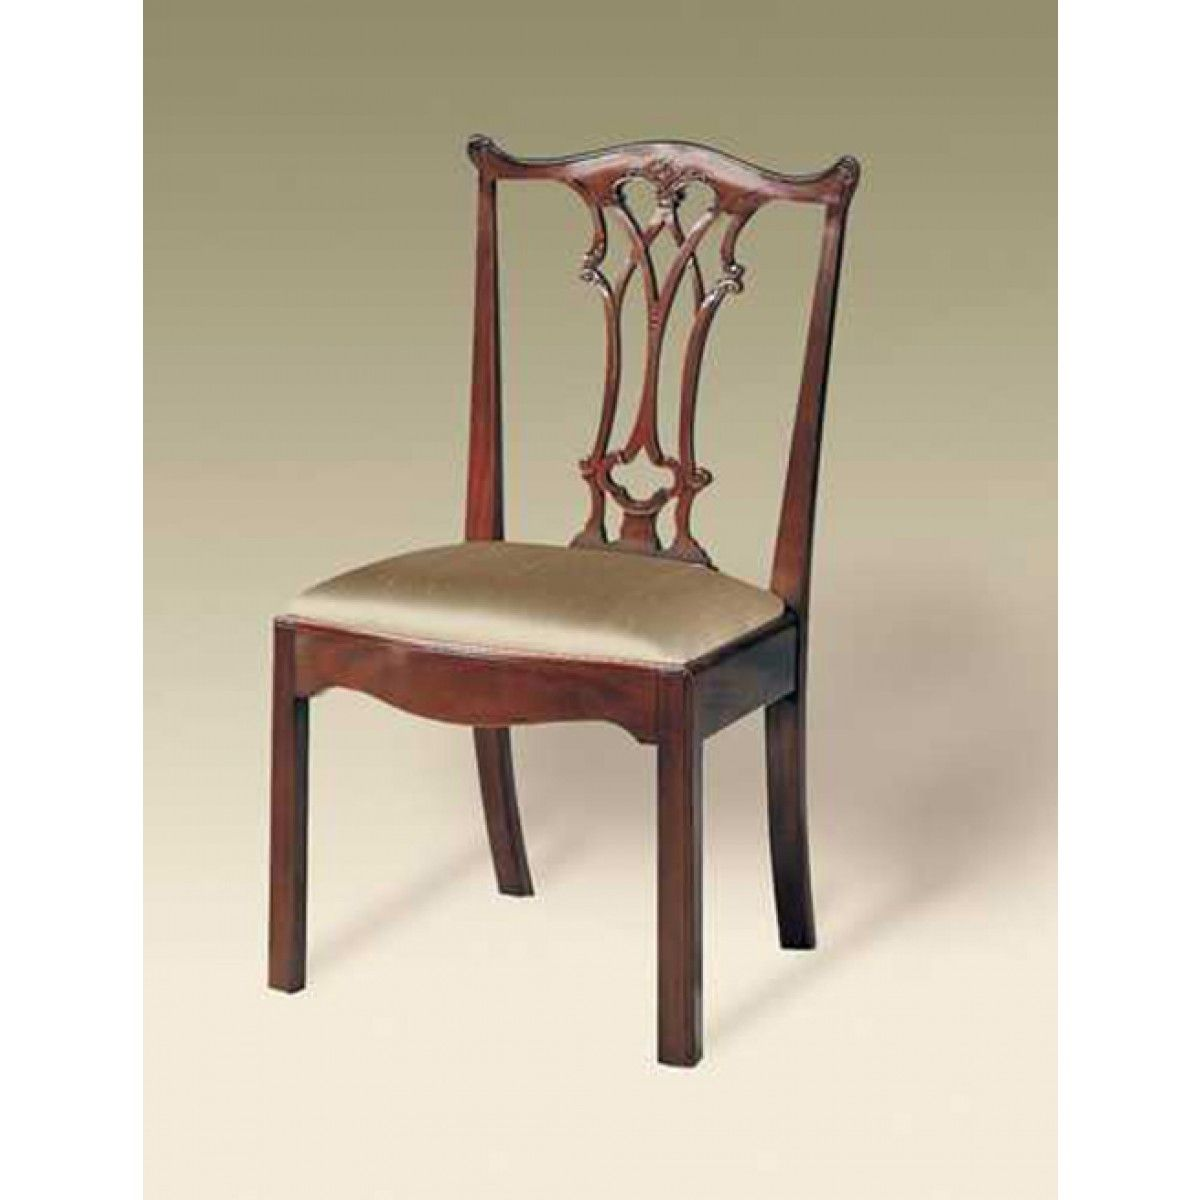 Maitland-Smith Carved Polished Mahogany Finish Chippendale Straight Leg Side Chair, Neutral Uph